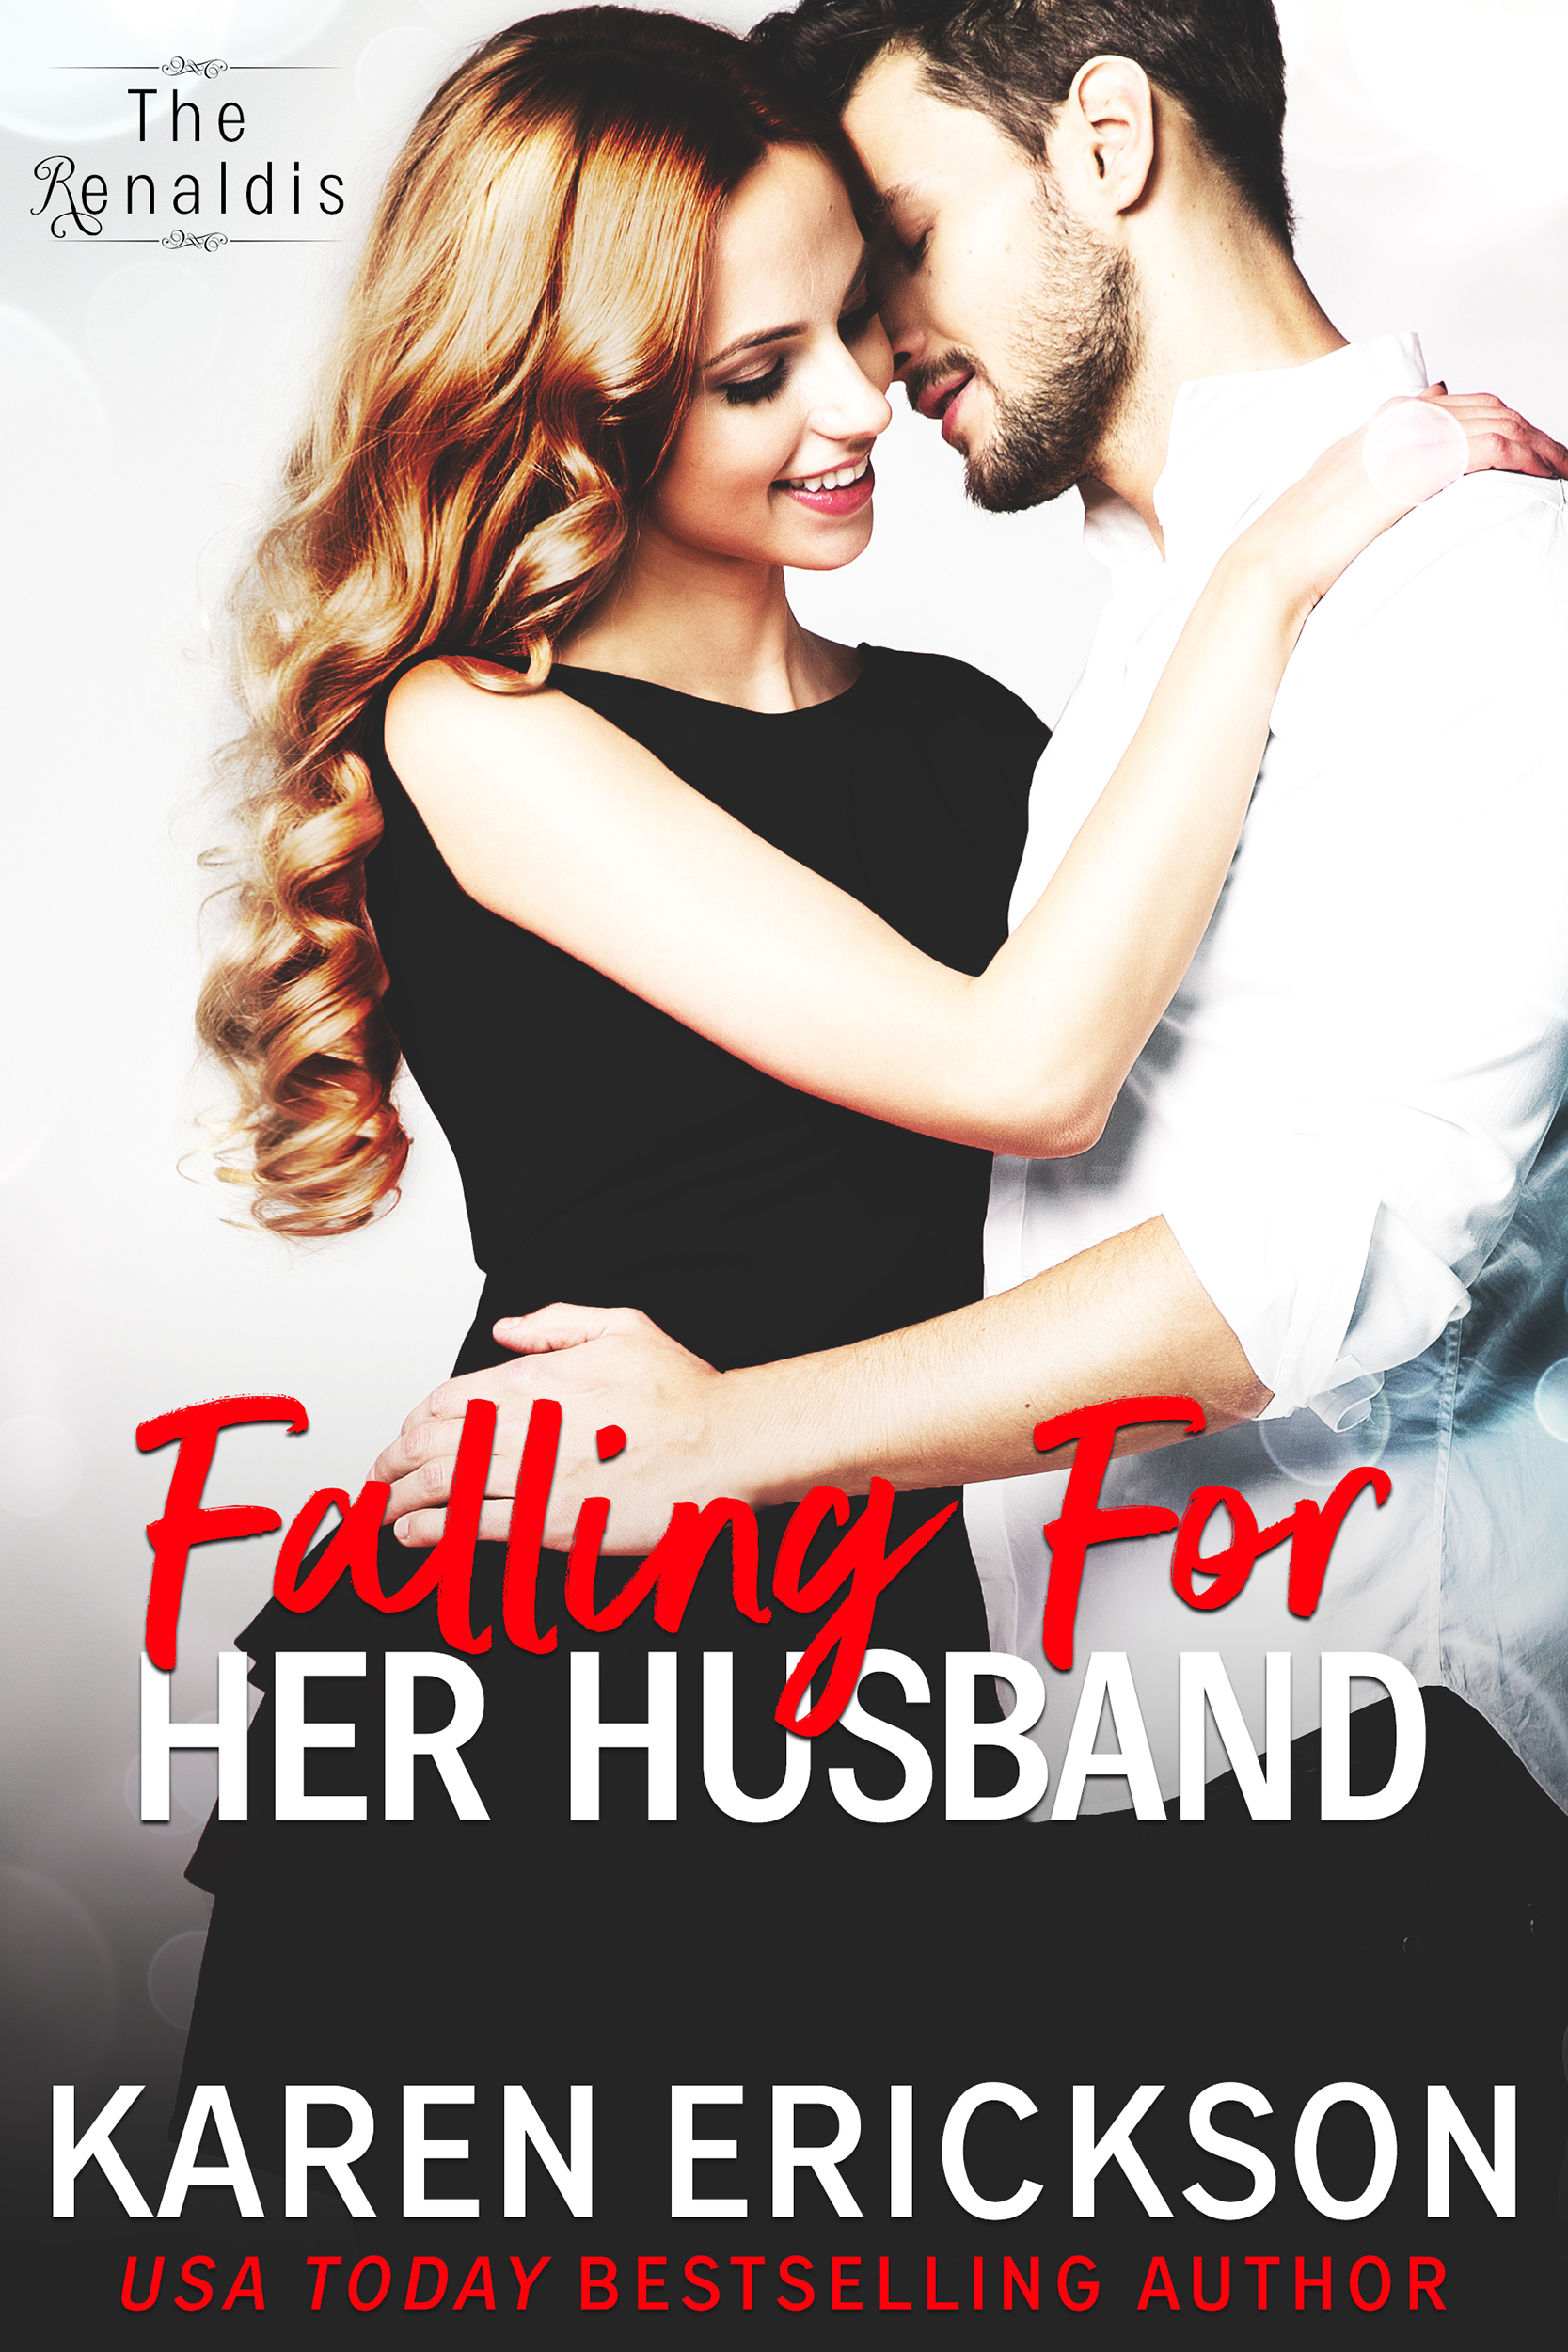 Falling For Her Husband - The Renaldis, Book 3Amazon • B&N • iBooks • Kobo • GooglePlayShe's desperate to remember…and he's desperate to forget.These are the things Amber Renaldi knows for sure:She's in the hospital.Her modeling career may be over.And her handsome husband will treat her like a queen, through her recovery and beyond. But there's a shadow lurking just beyond what she remembers before the crash.Vincenzo Renaldi knows other things.He was the one who chased her away, and into the path of the car.That even before the accident, the magic of their whirlwind romance was dissipating.And that if Amber ever remembers everything, he could lose her again—this time forever.Amazon • B&N • iBooks • Kobo • GooglePlay